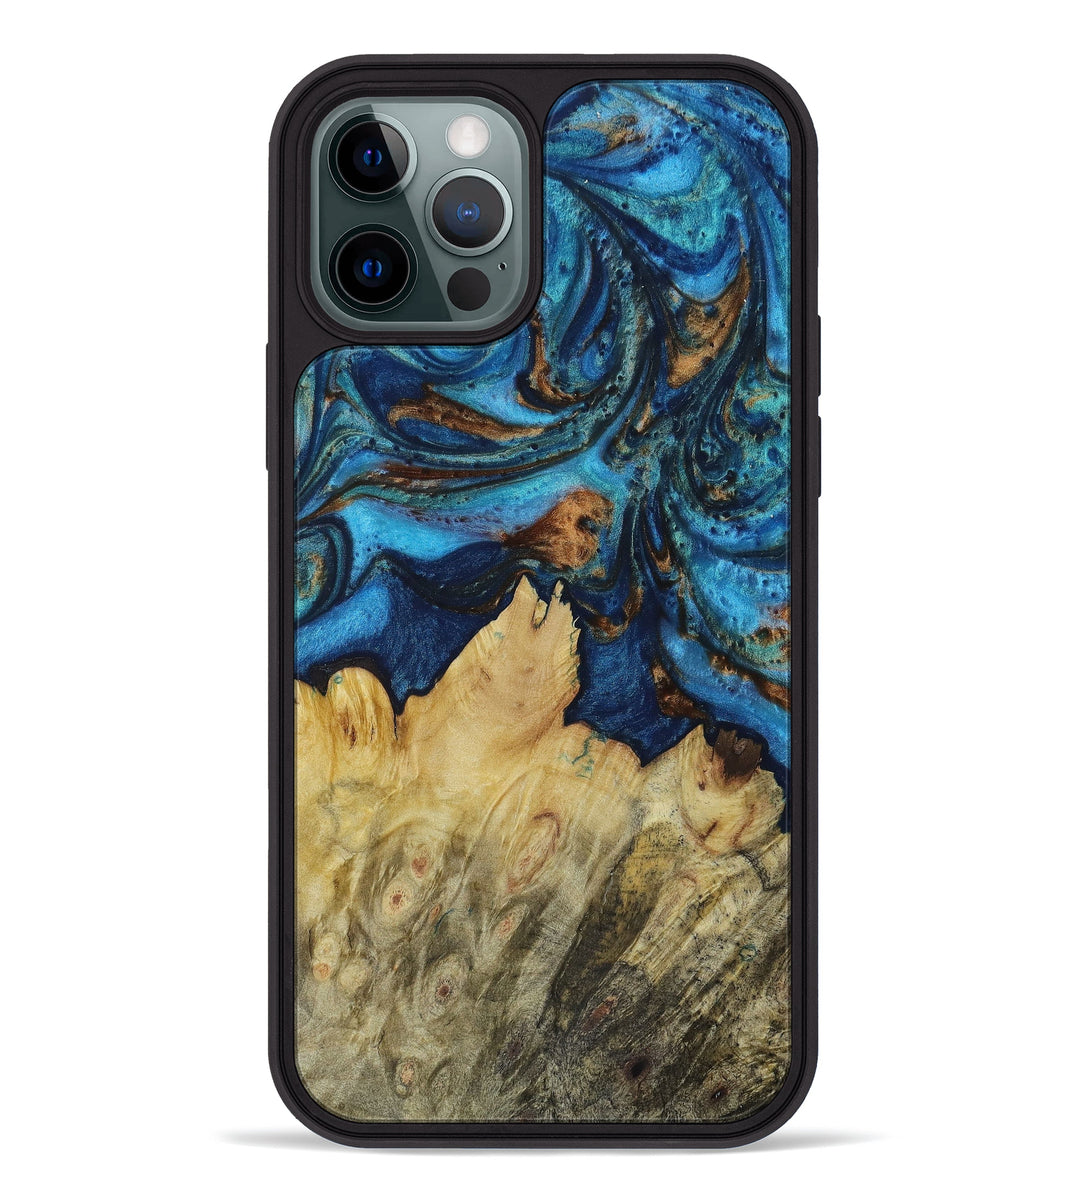 iPhone 12 Pro Wood+Resin Phone Case - Ludovika (Teal & Gold, 396046)